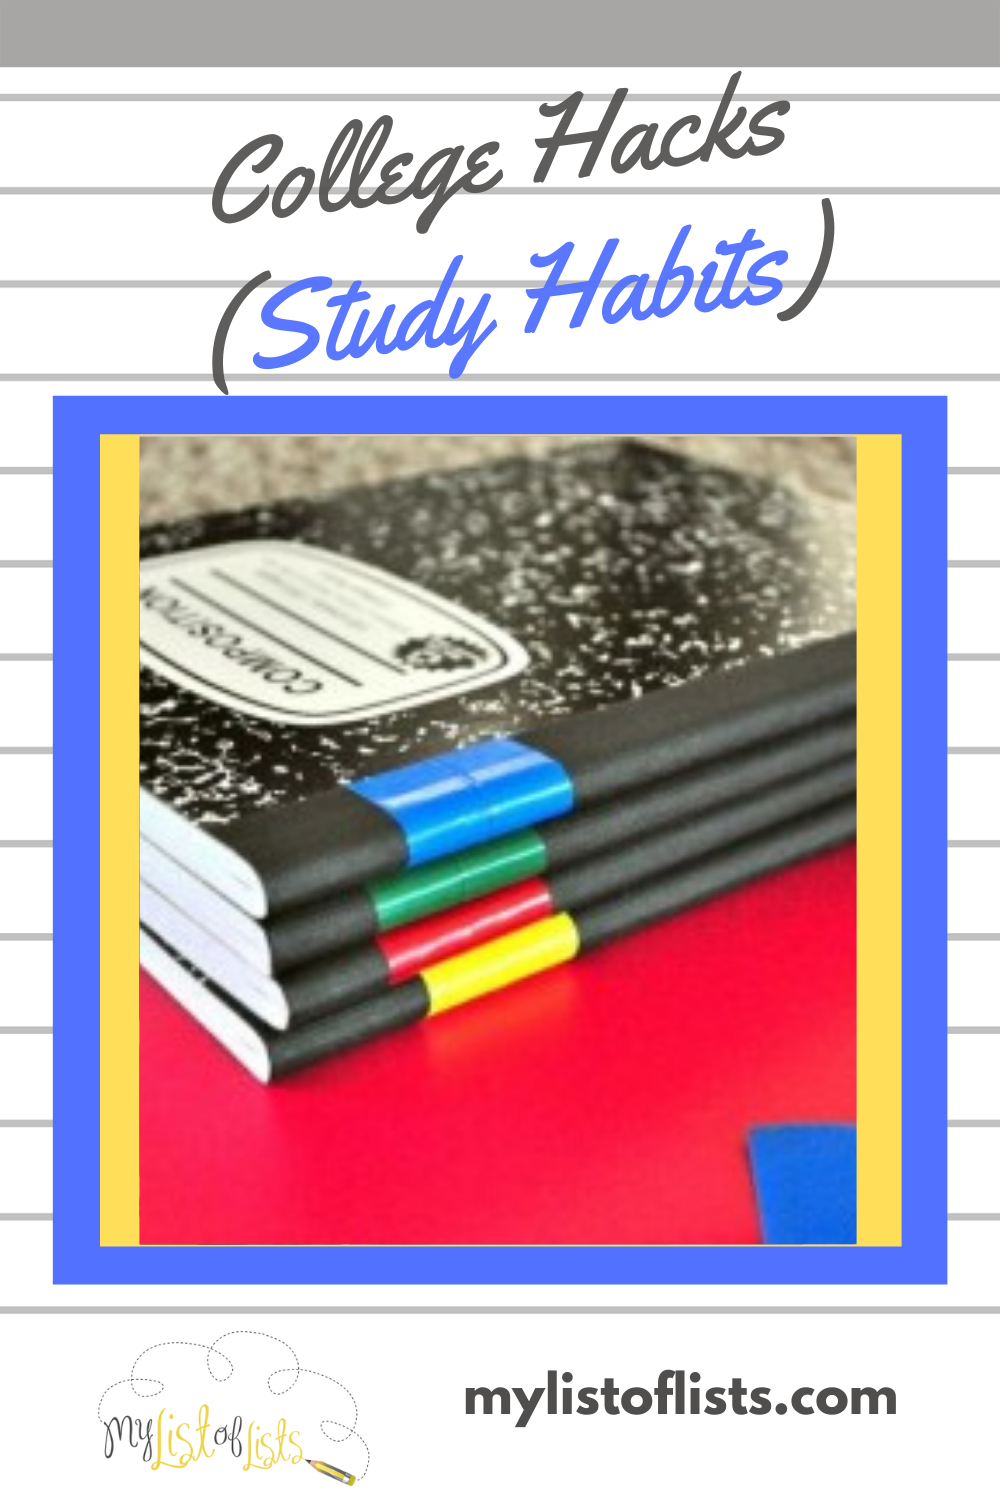 College was a shock for me. Despite being a straight A student in high school, my first college exam freaked me out. I knew then I needed to take better notes and change my study habits. Once I did, I was golden. Read this post for a list of college hacks that prepare you for the unknown. #collegetips #collegesurvival #collegehacks #mylistoflistsblog